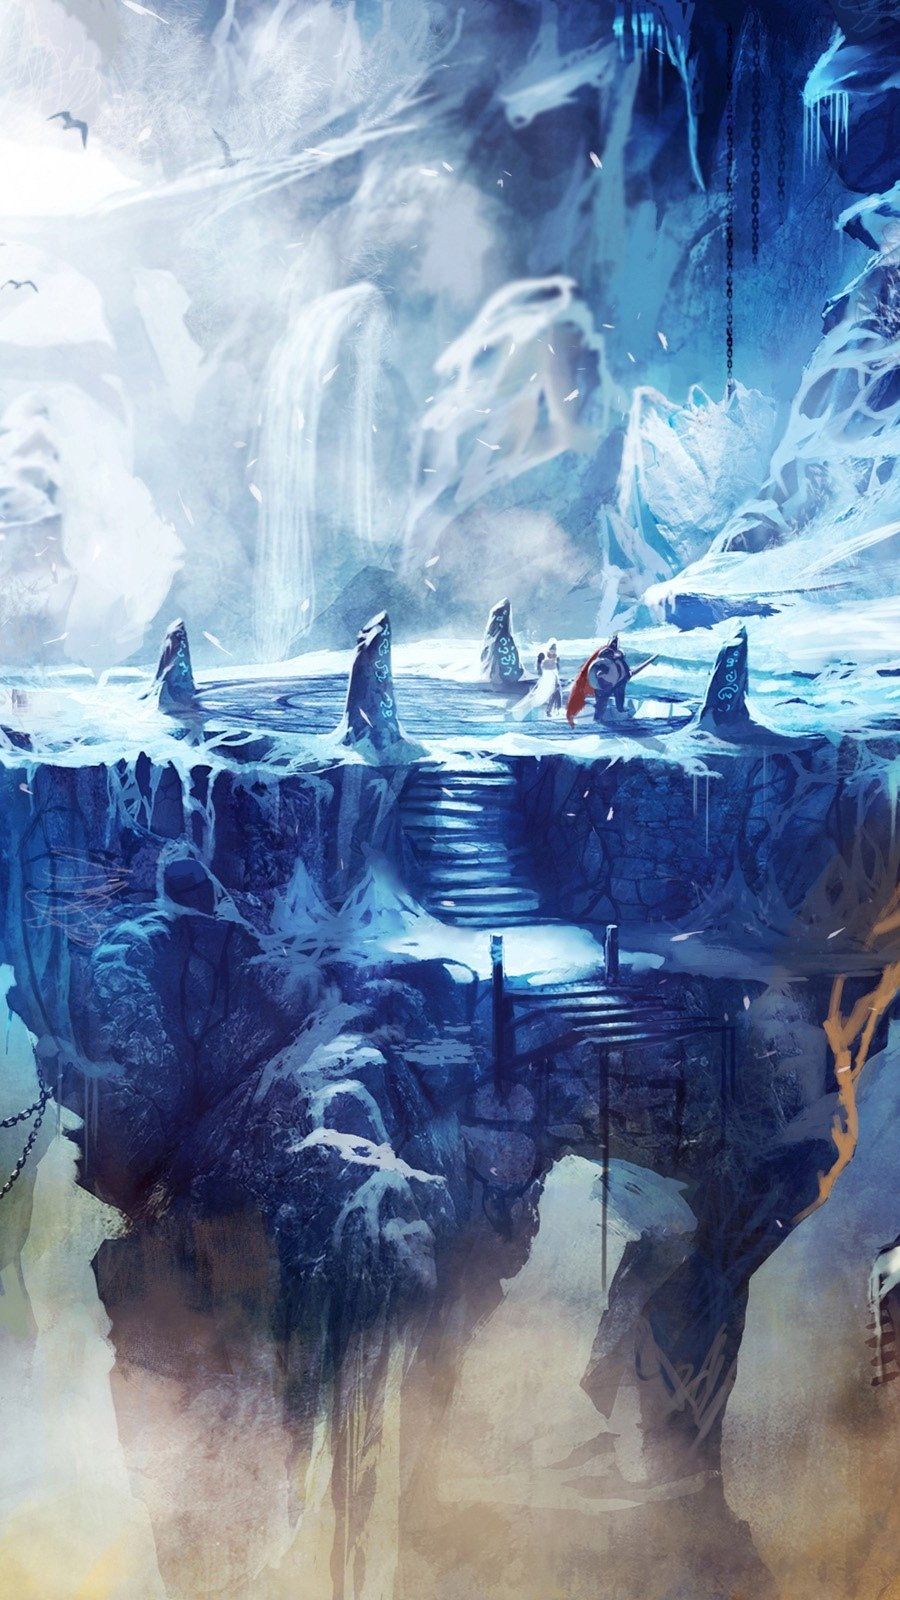 Wallpaper Cave frozen in trine 2 Vertical